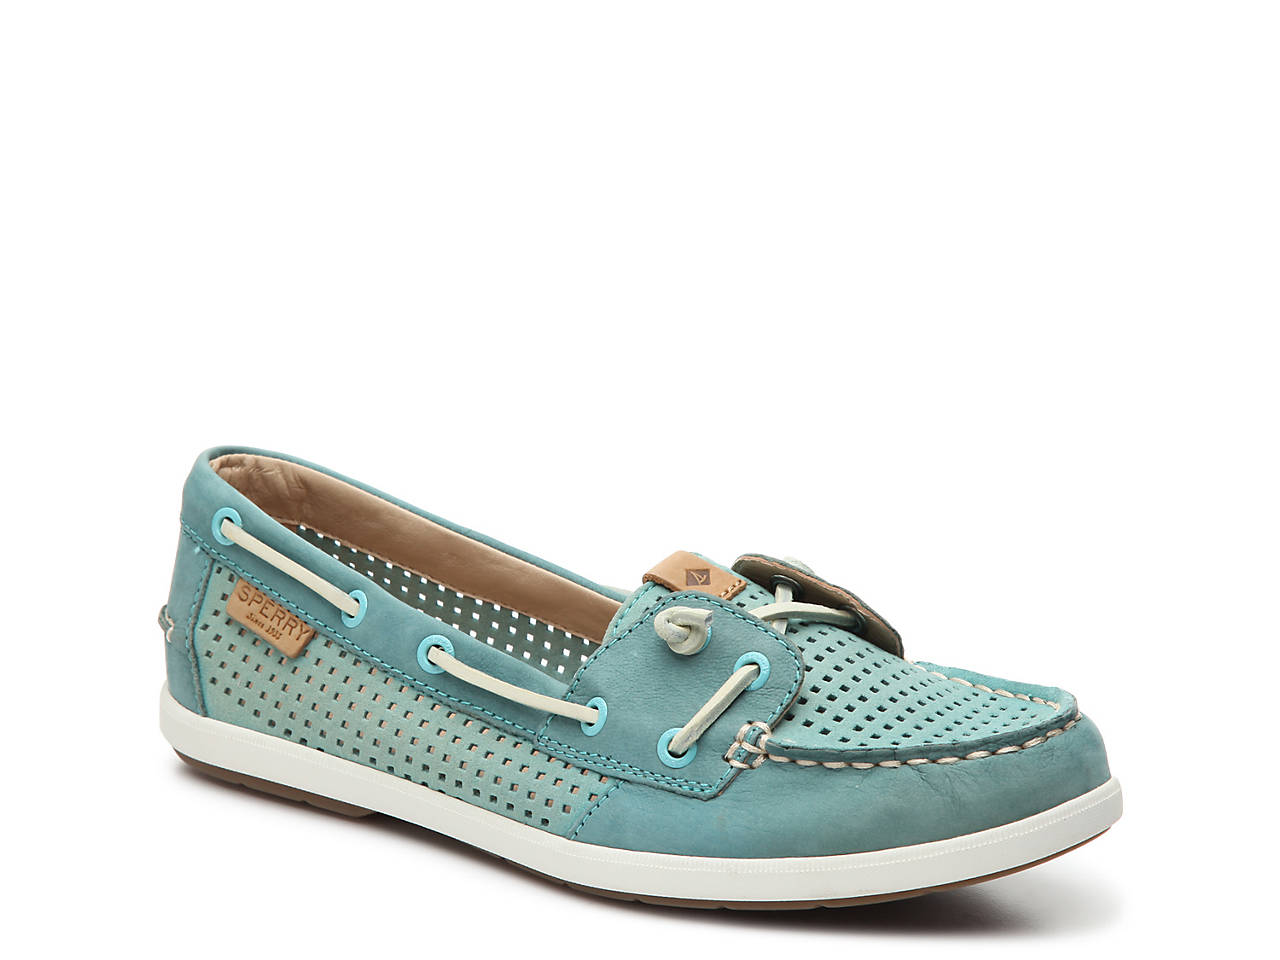 e28103b17e Sperry Top-Sider Coil Ivy Boat Shoe Women s Shoes